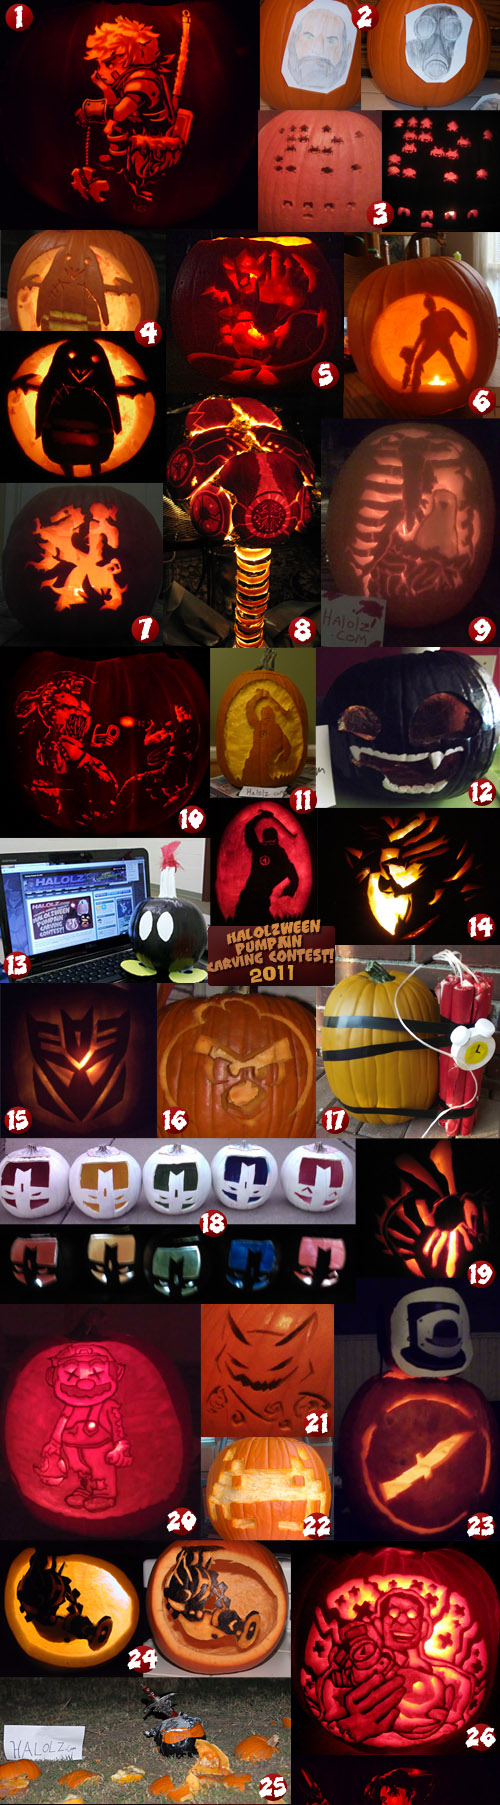 Halolz 2011 Halolzween Pumpkin Carving Contest Entries Page 1